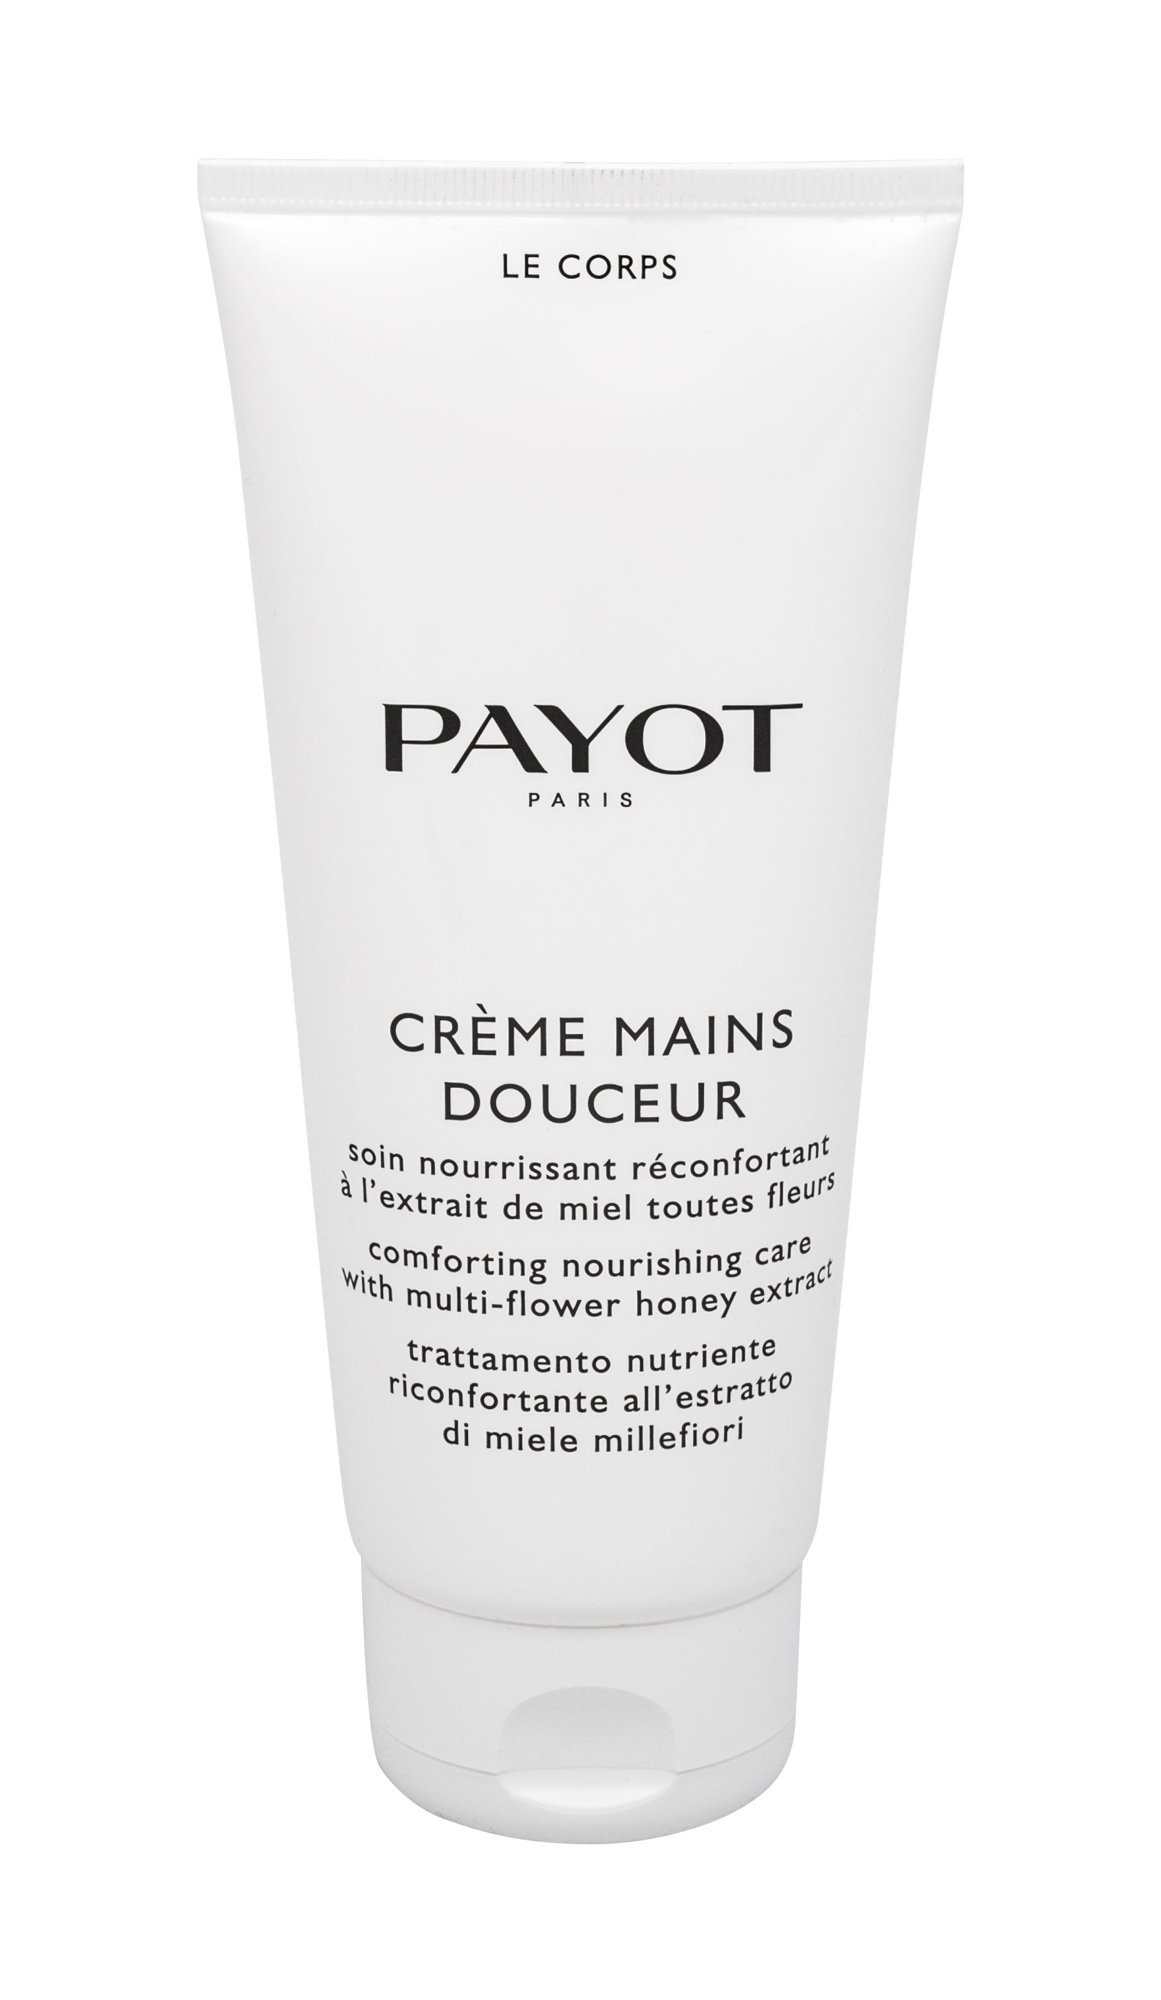 PAYOT Creme Mains Douceur Hand Cream 200ml